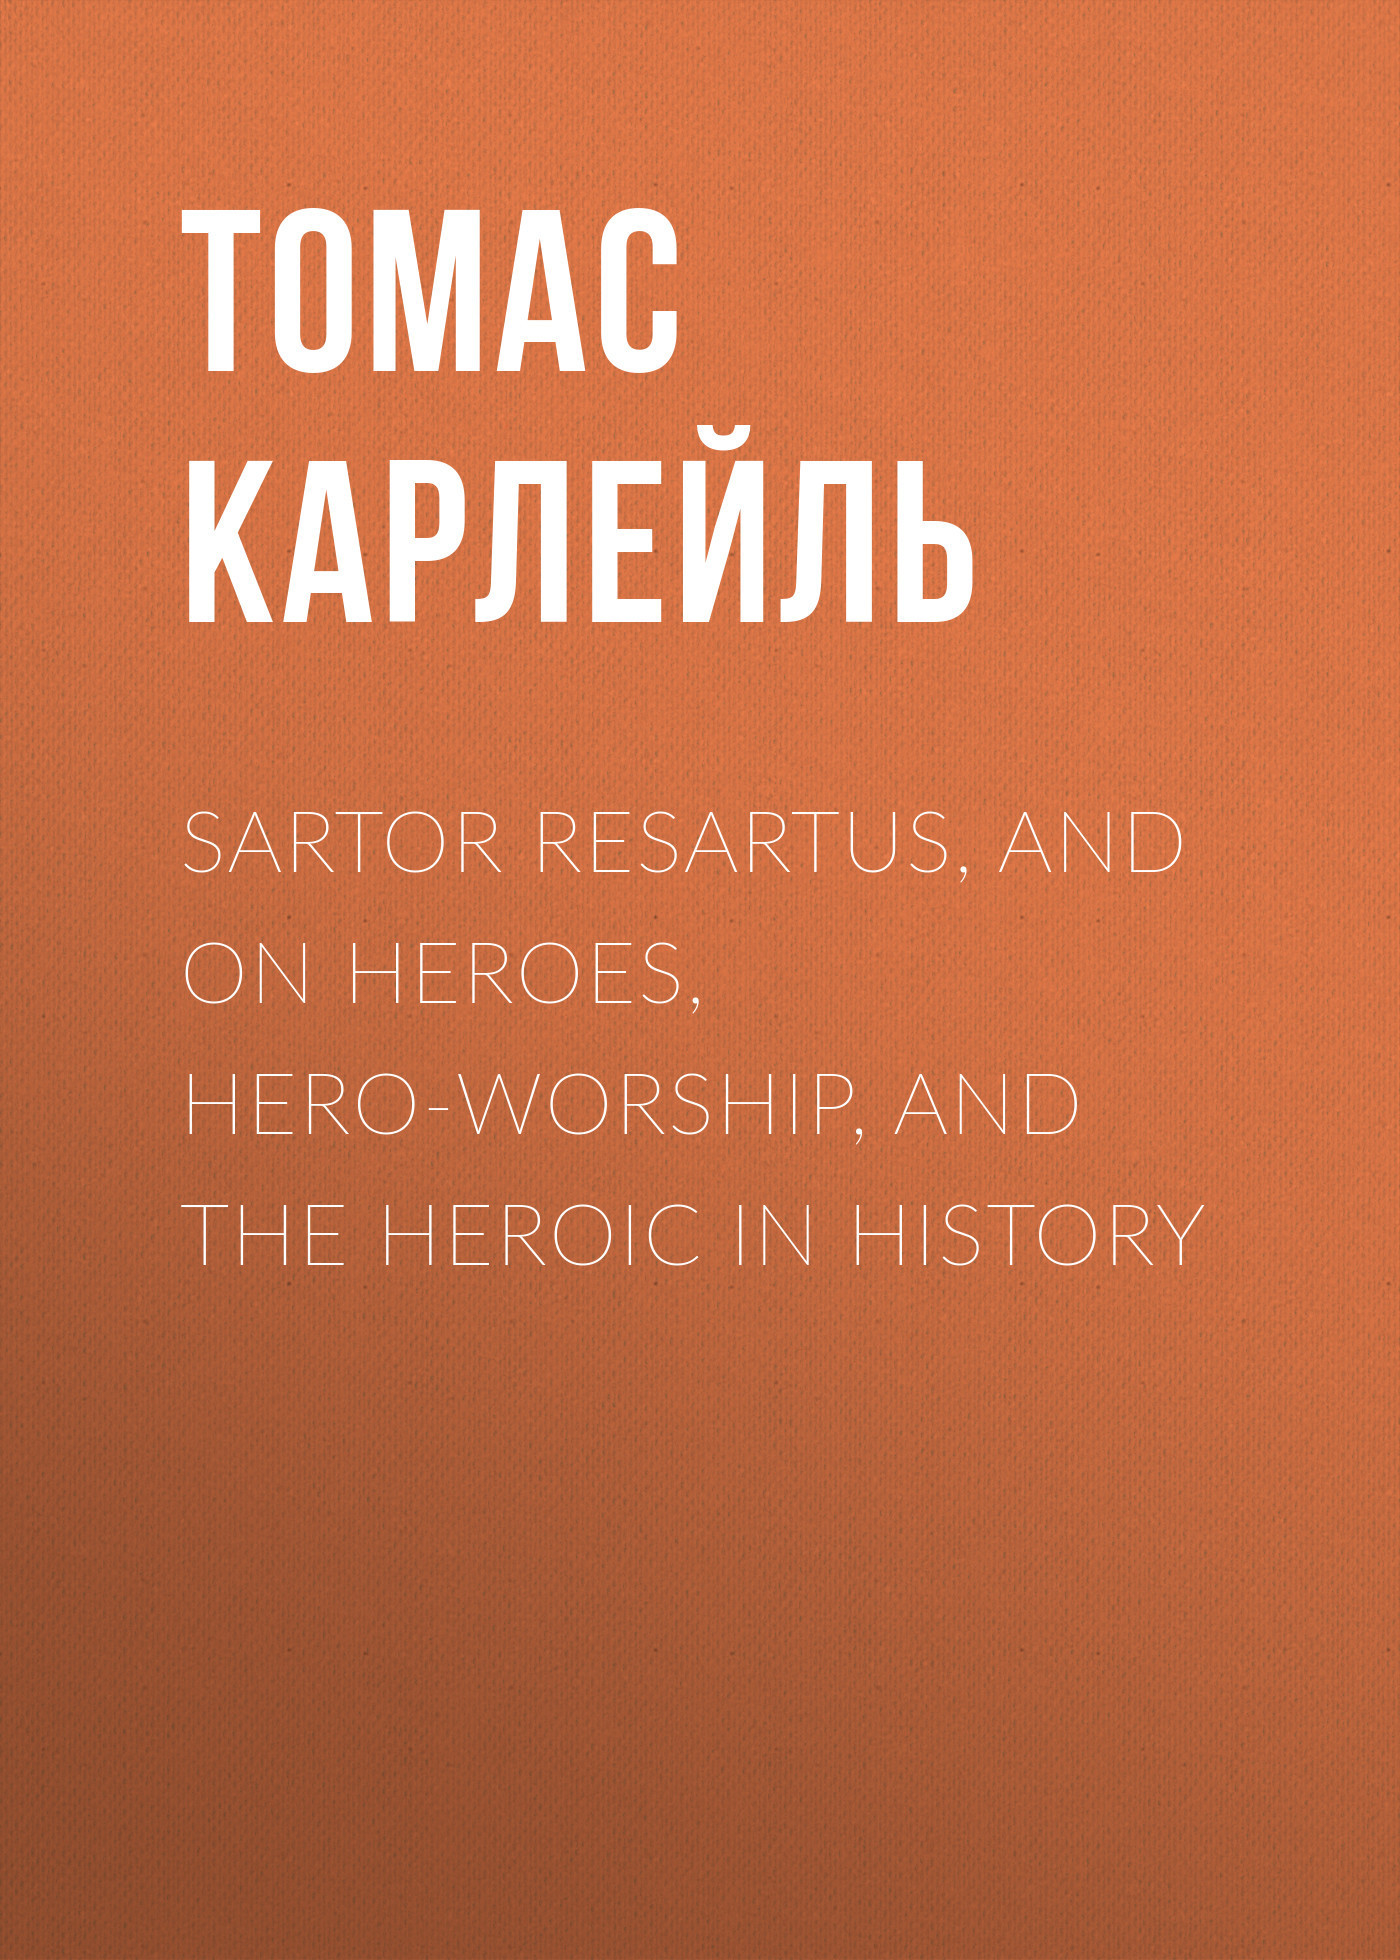 Томас Карлейль Sartor Resartus, and On Heroes, Hero-Worship, and the Heroic in History fools knaves and heroes